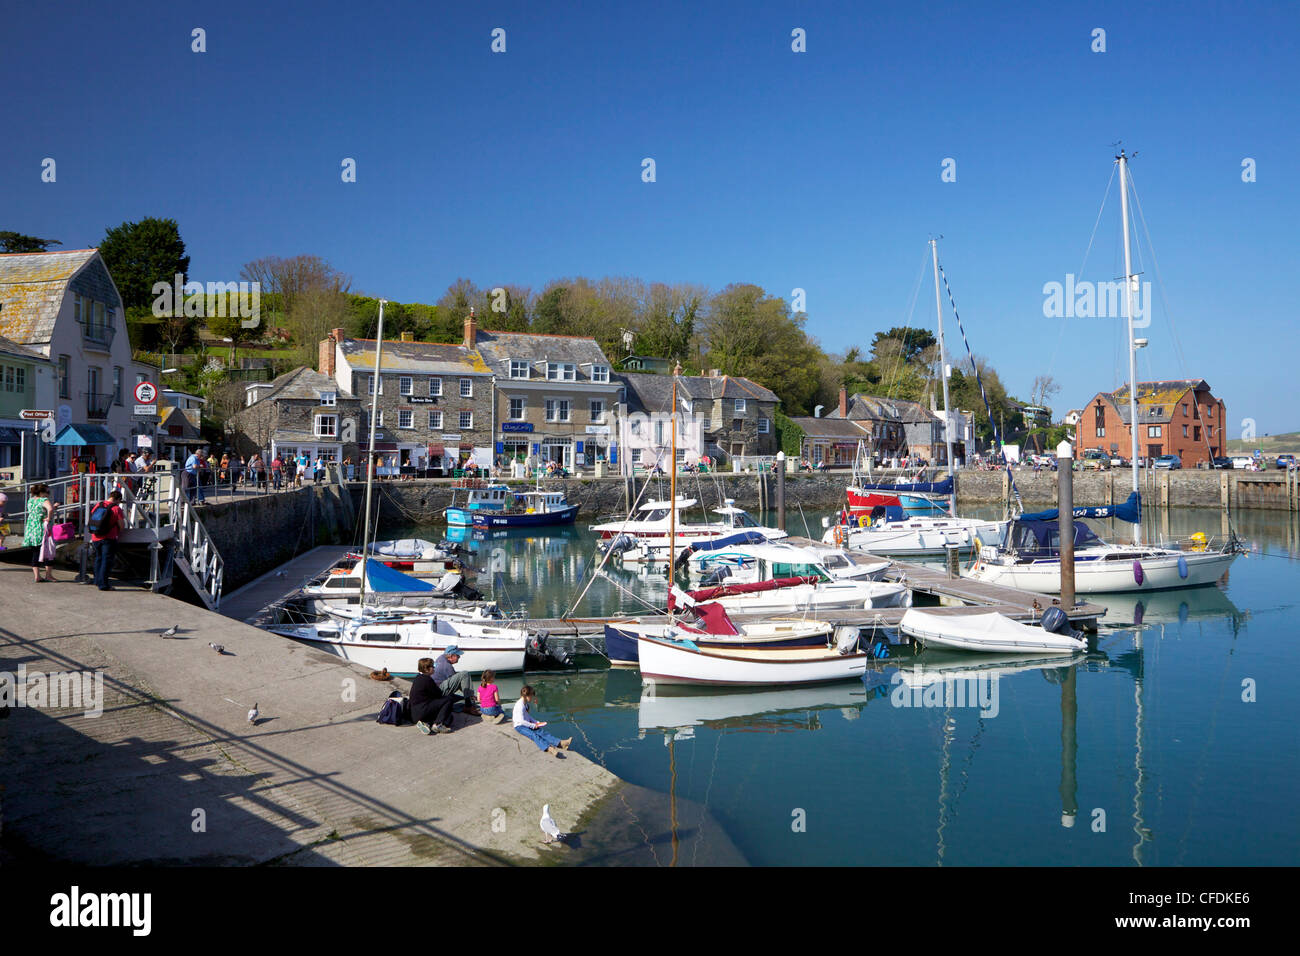 Fishing boats in Padstow Harbour, Camel Estuary, North Cornwall, England, United Kingdom, Europe - Stock Image